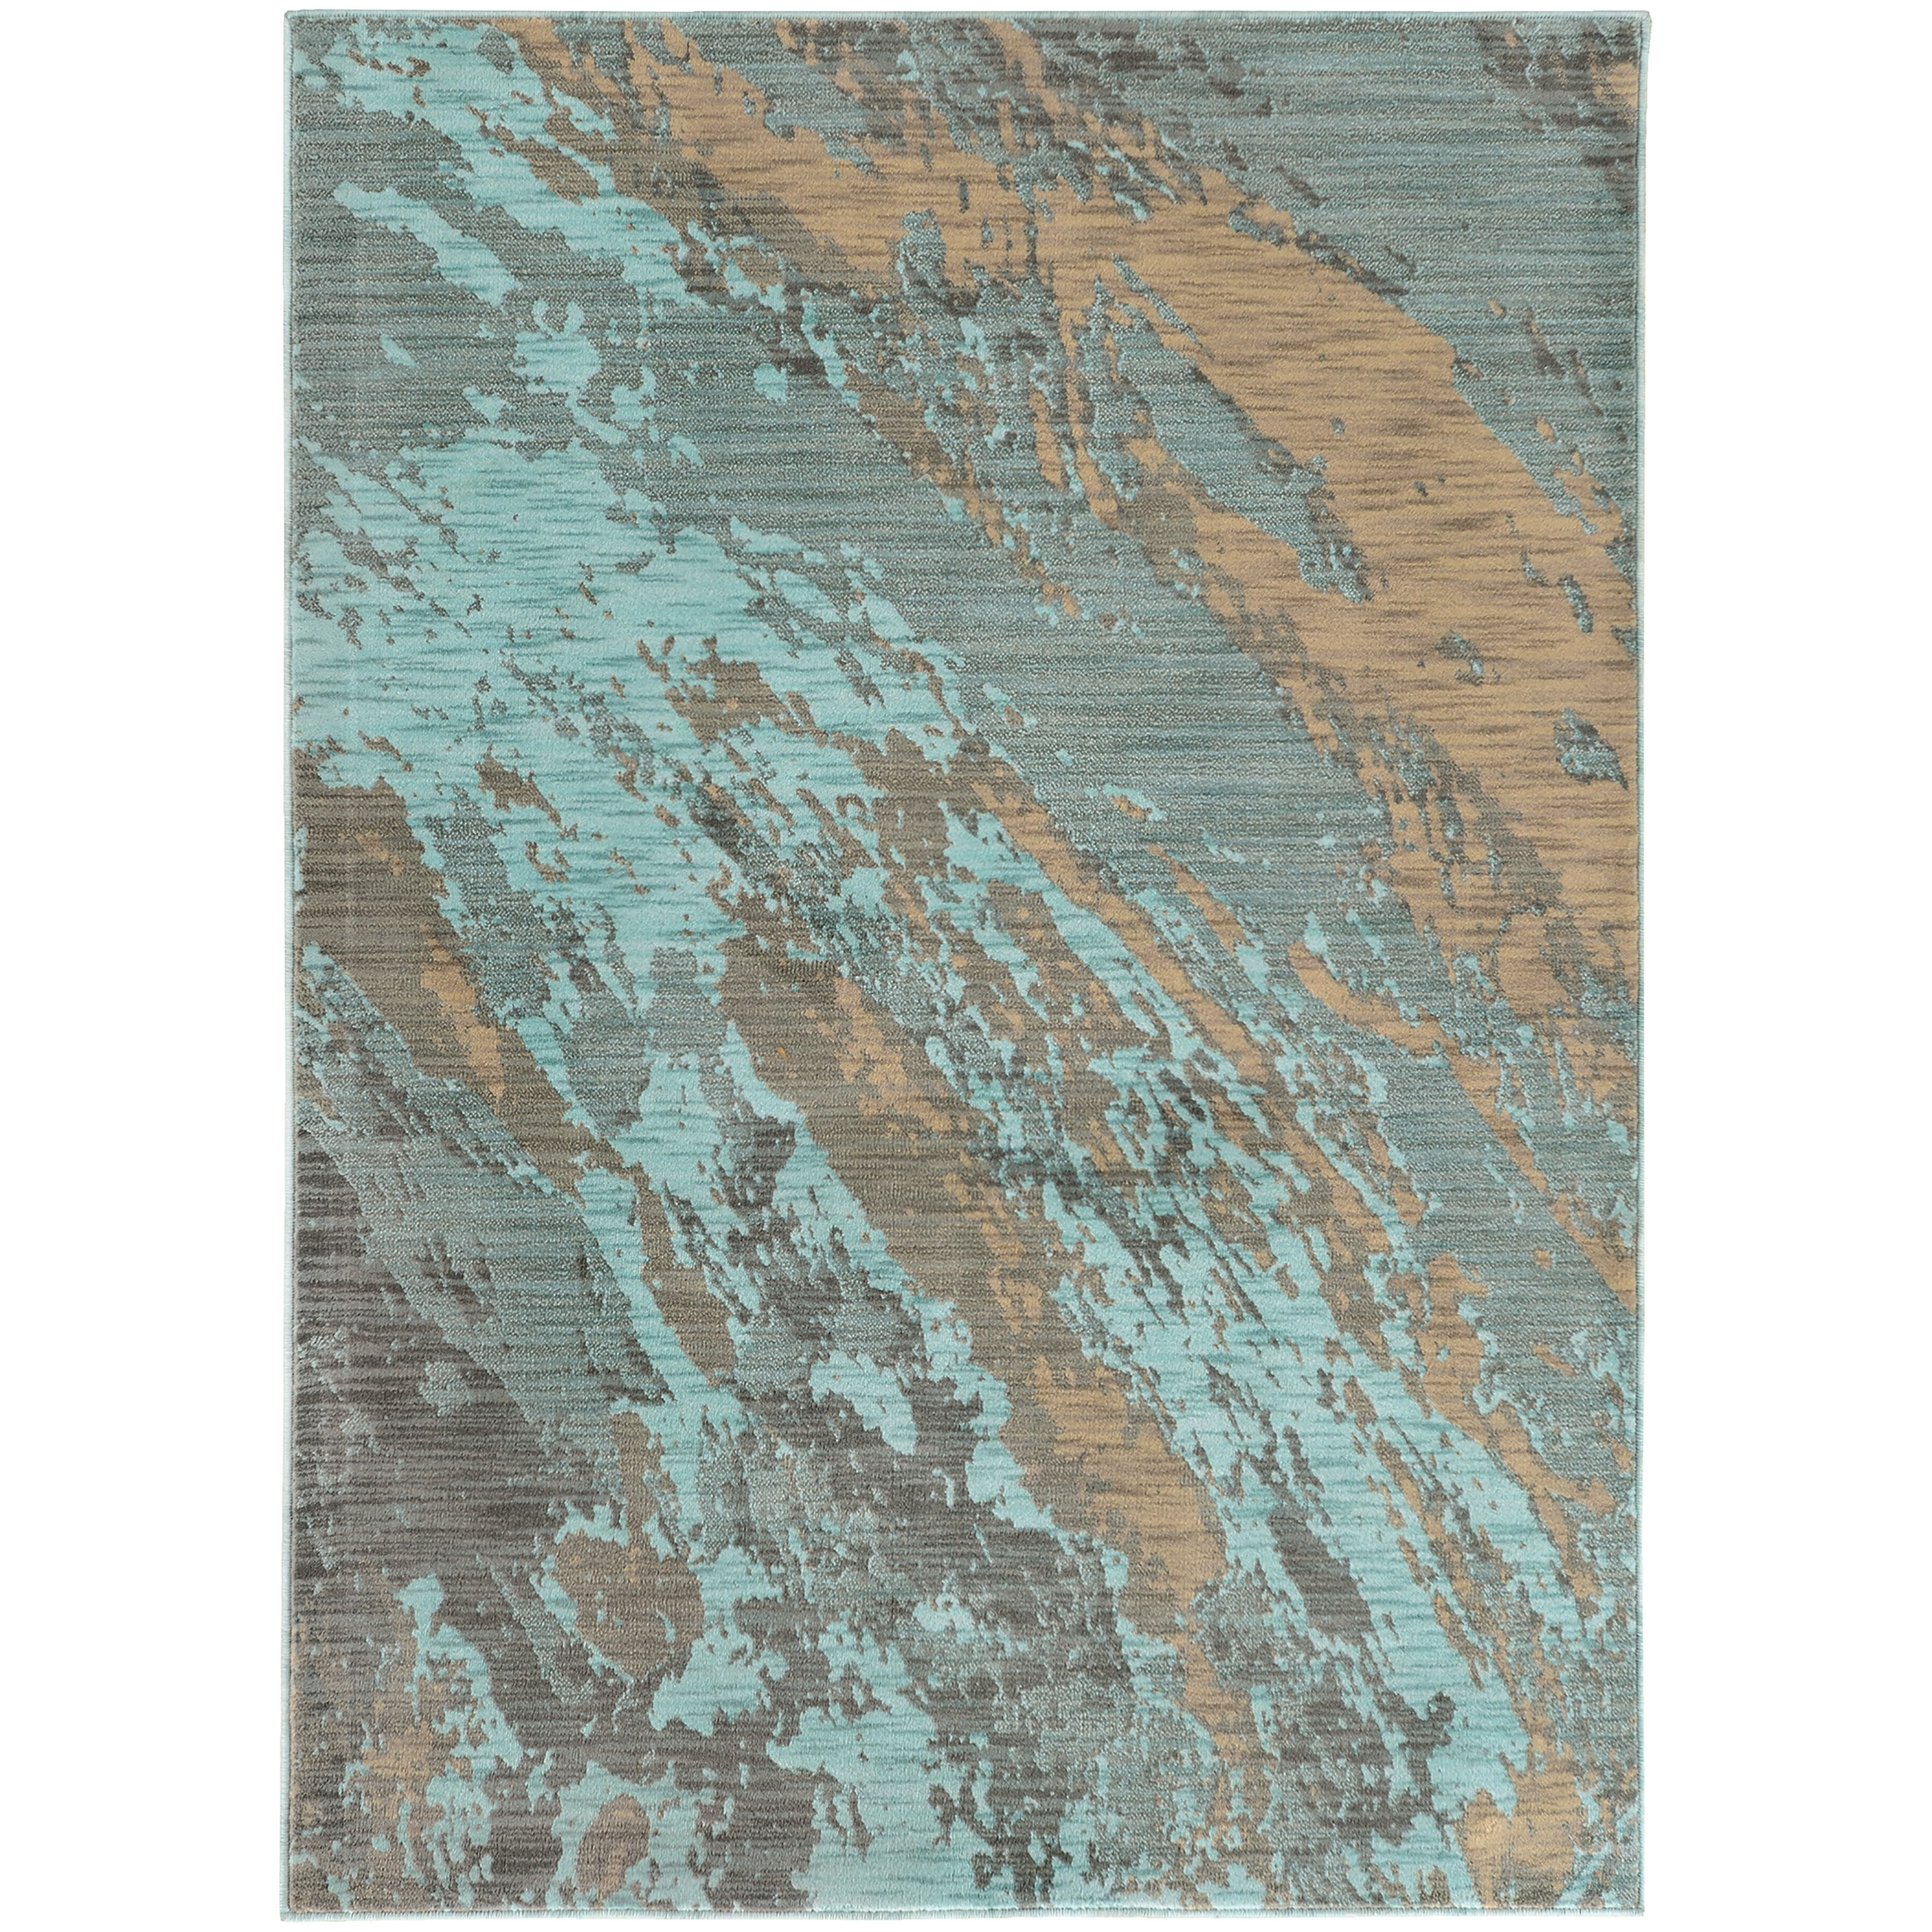 from hd grey rugs fresh yellow teal area rug ideas beyond bed bath wallpaper elegant and of intended for